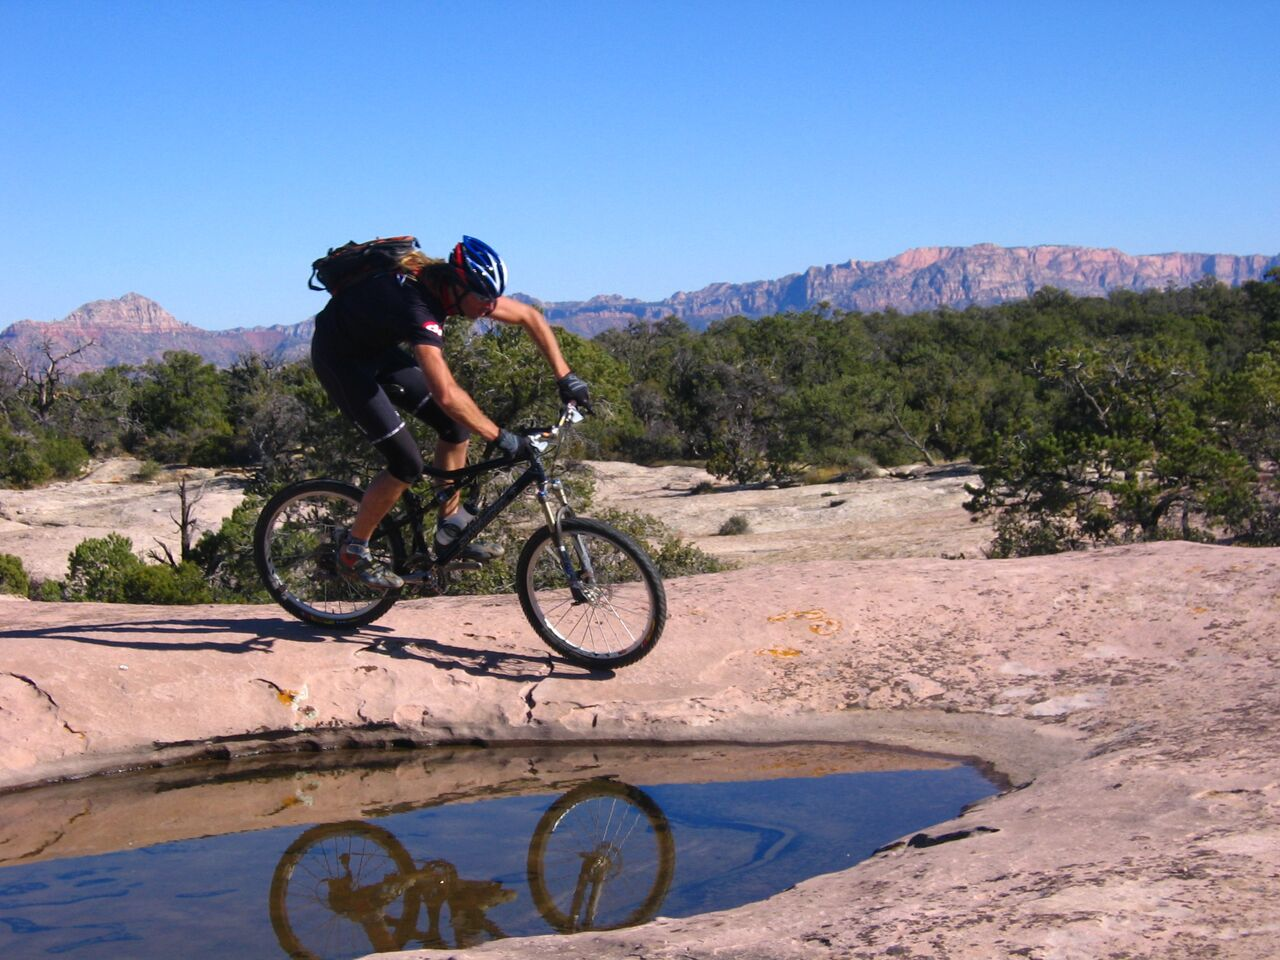 Riding the slickrock of Gooseberry Mesa, a mountain biker dream rounds a pothole filled from recent rains